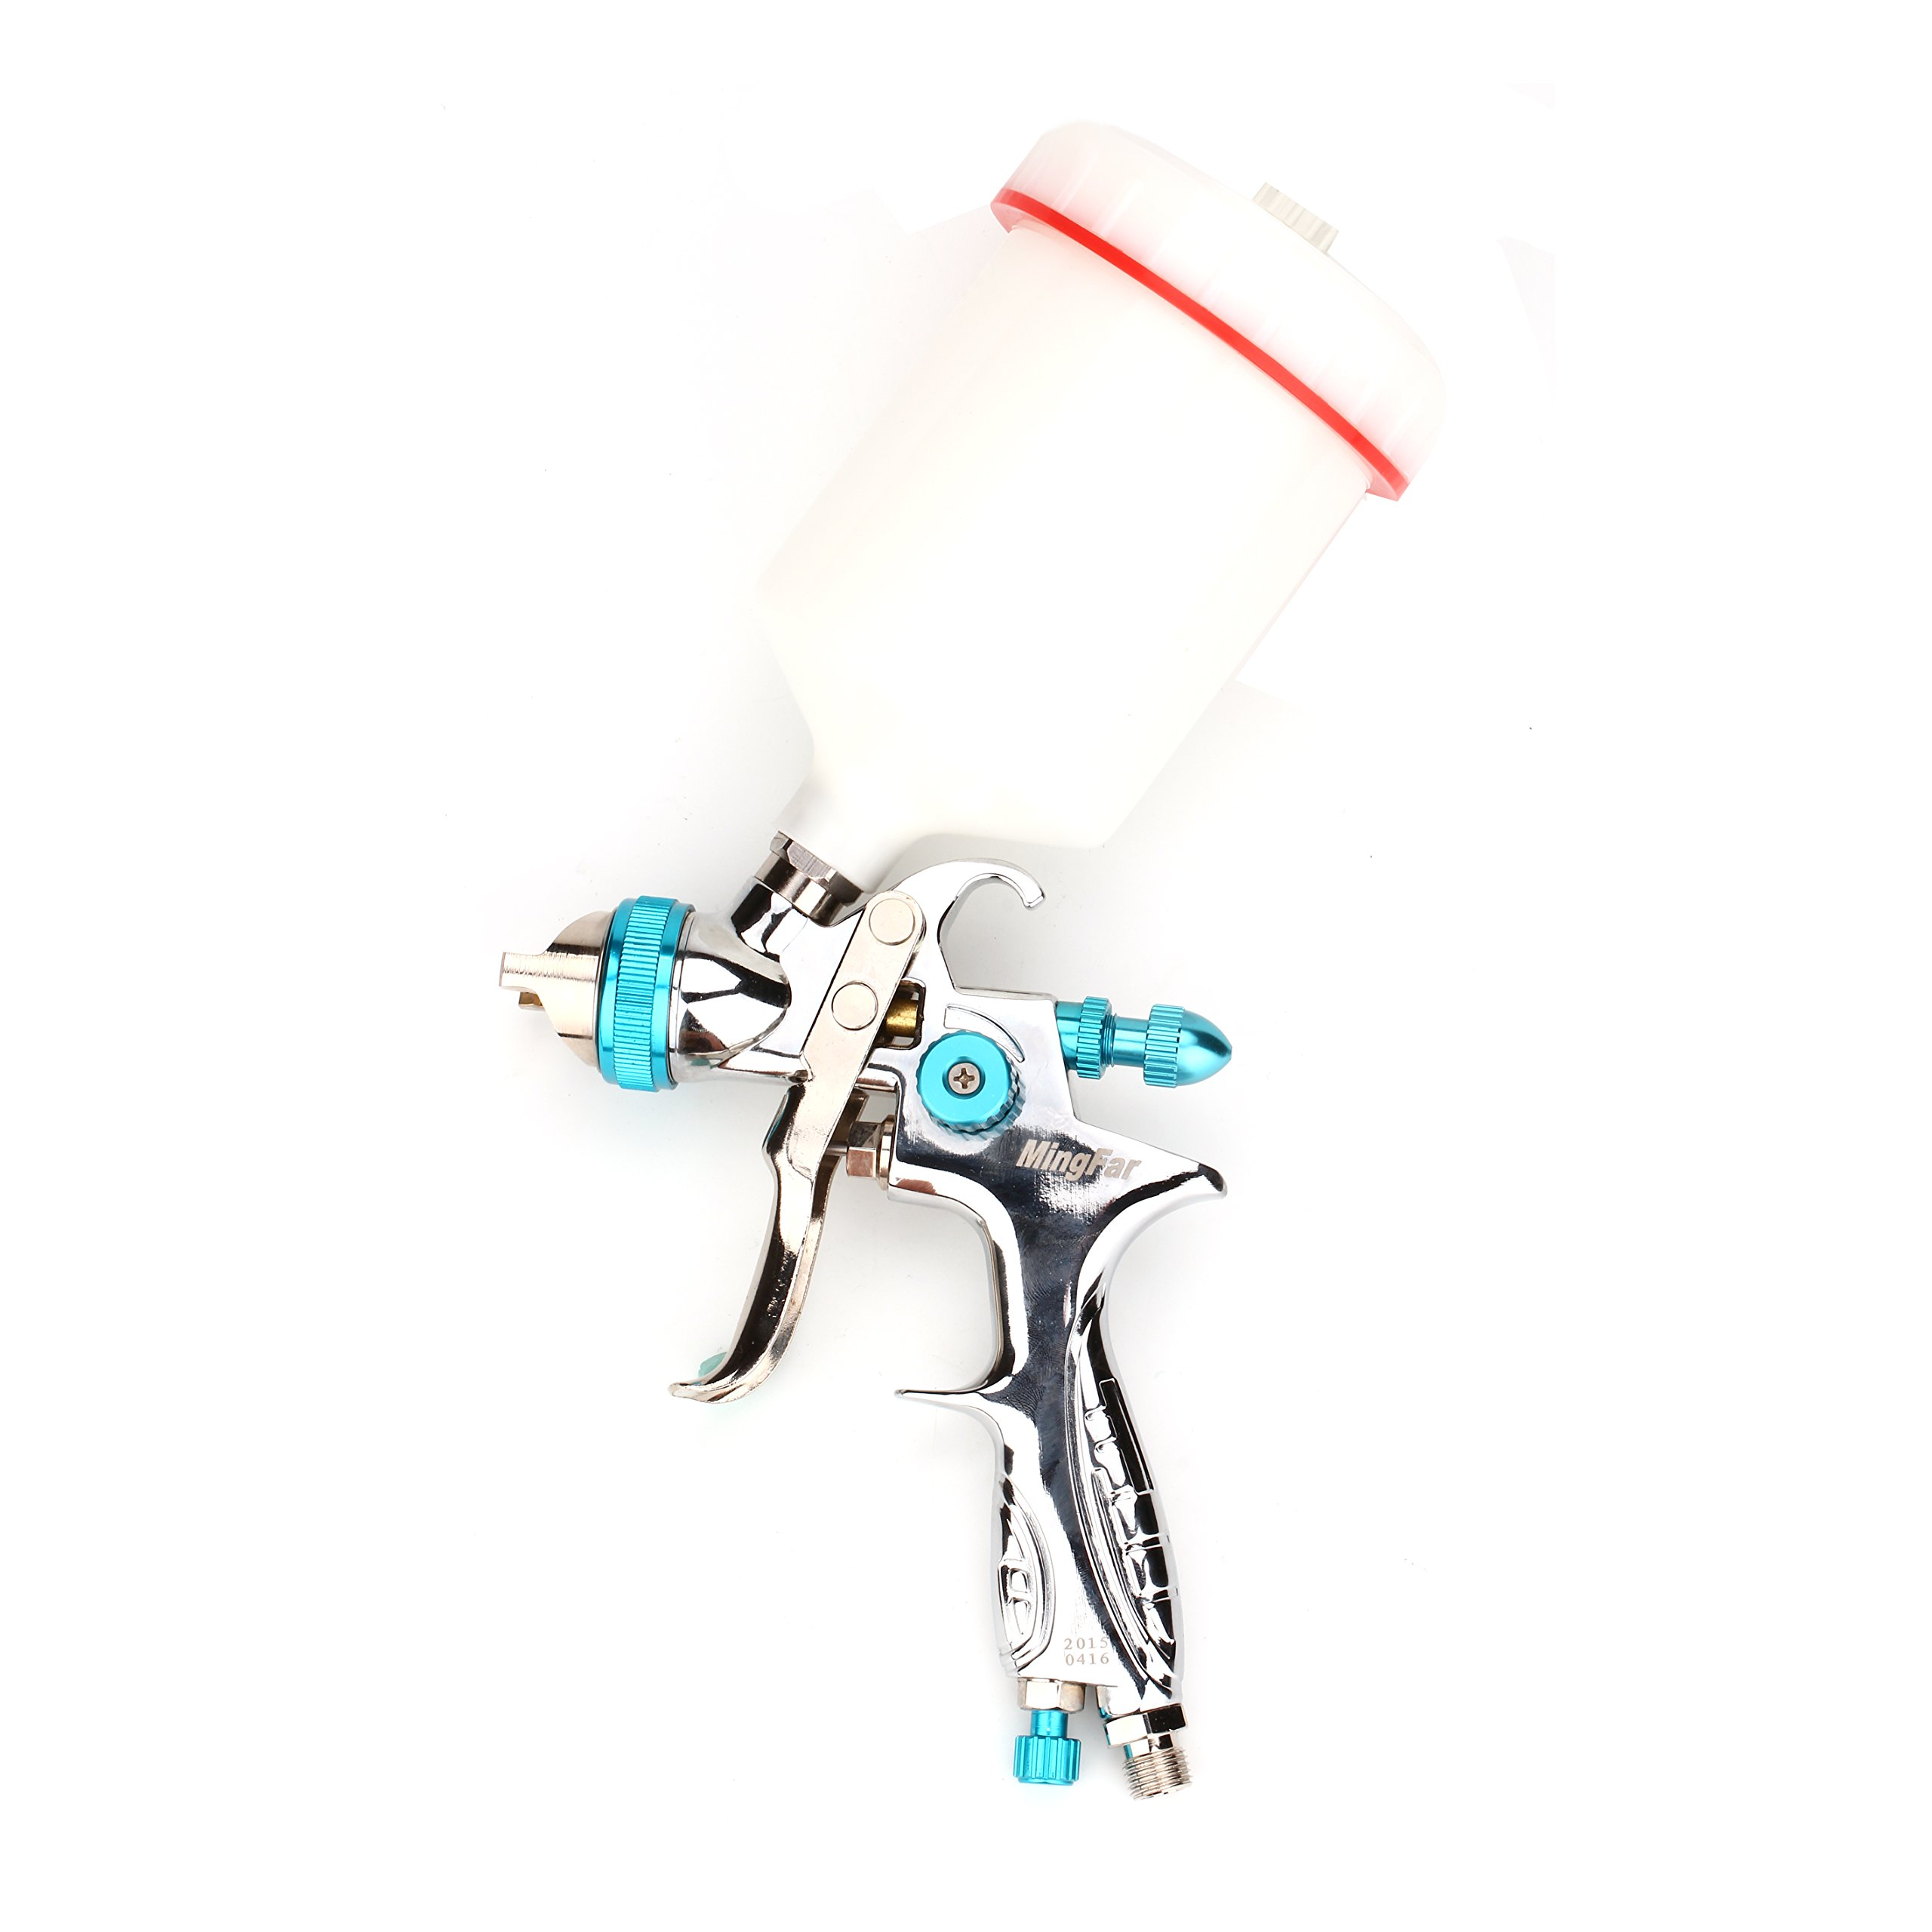 Professional HVLP Spray Gun Gravity /Siphon Feed|Nozzle Tip Size 1.4mm|1/4'' NPT |600cc/1000cc cup (HVLP-G1.4mm) by Shiningeyes (Image #1)